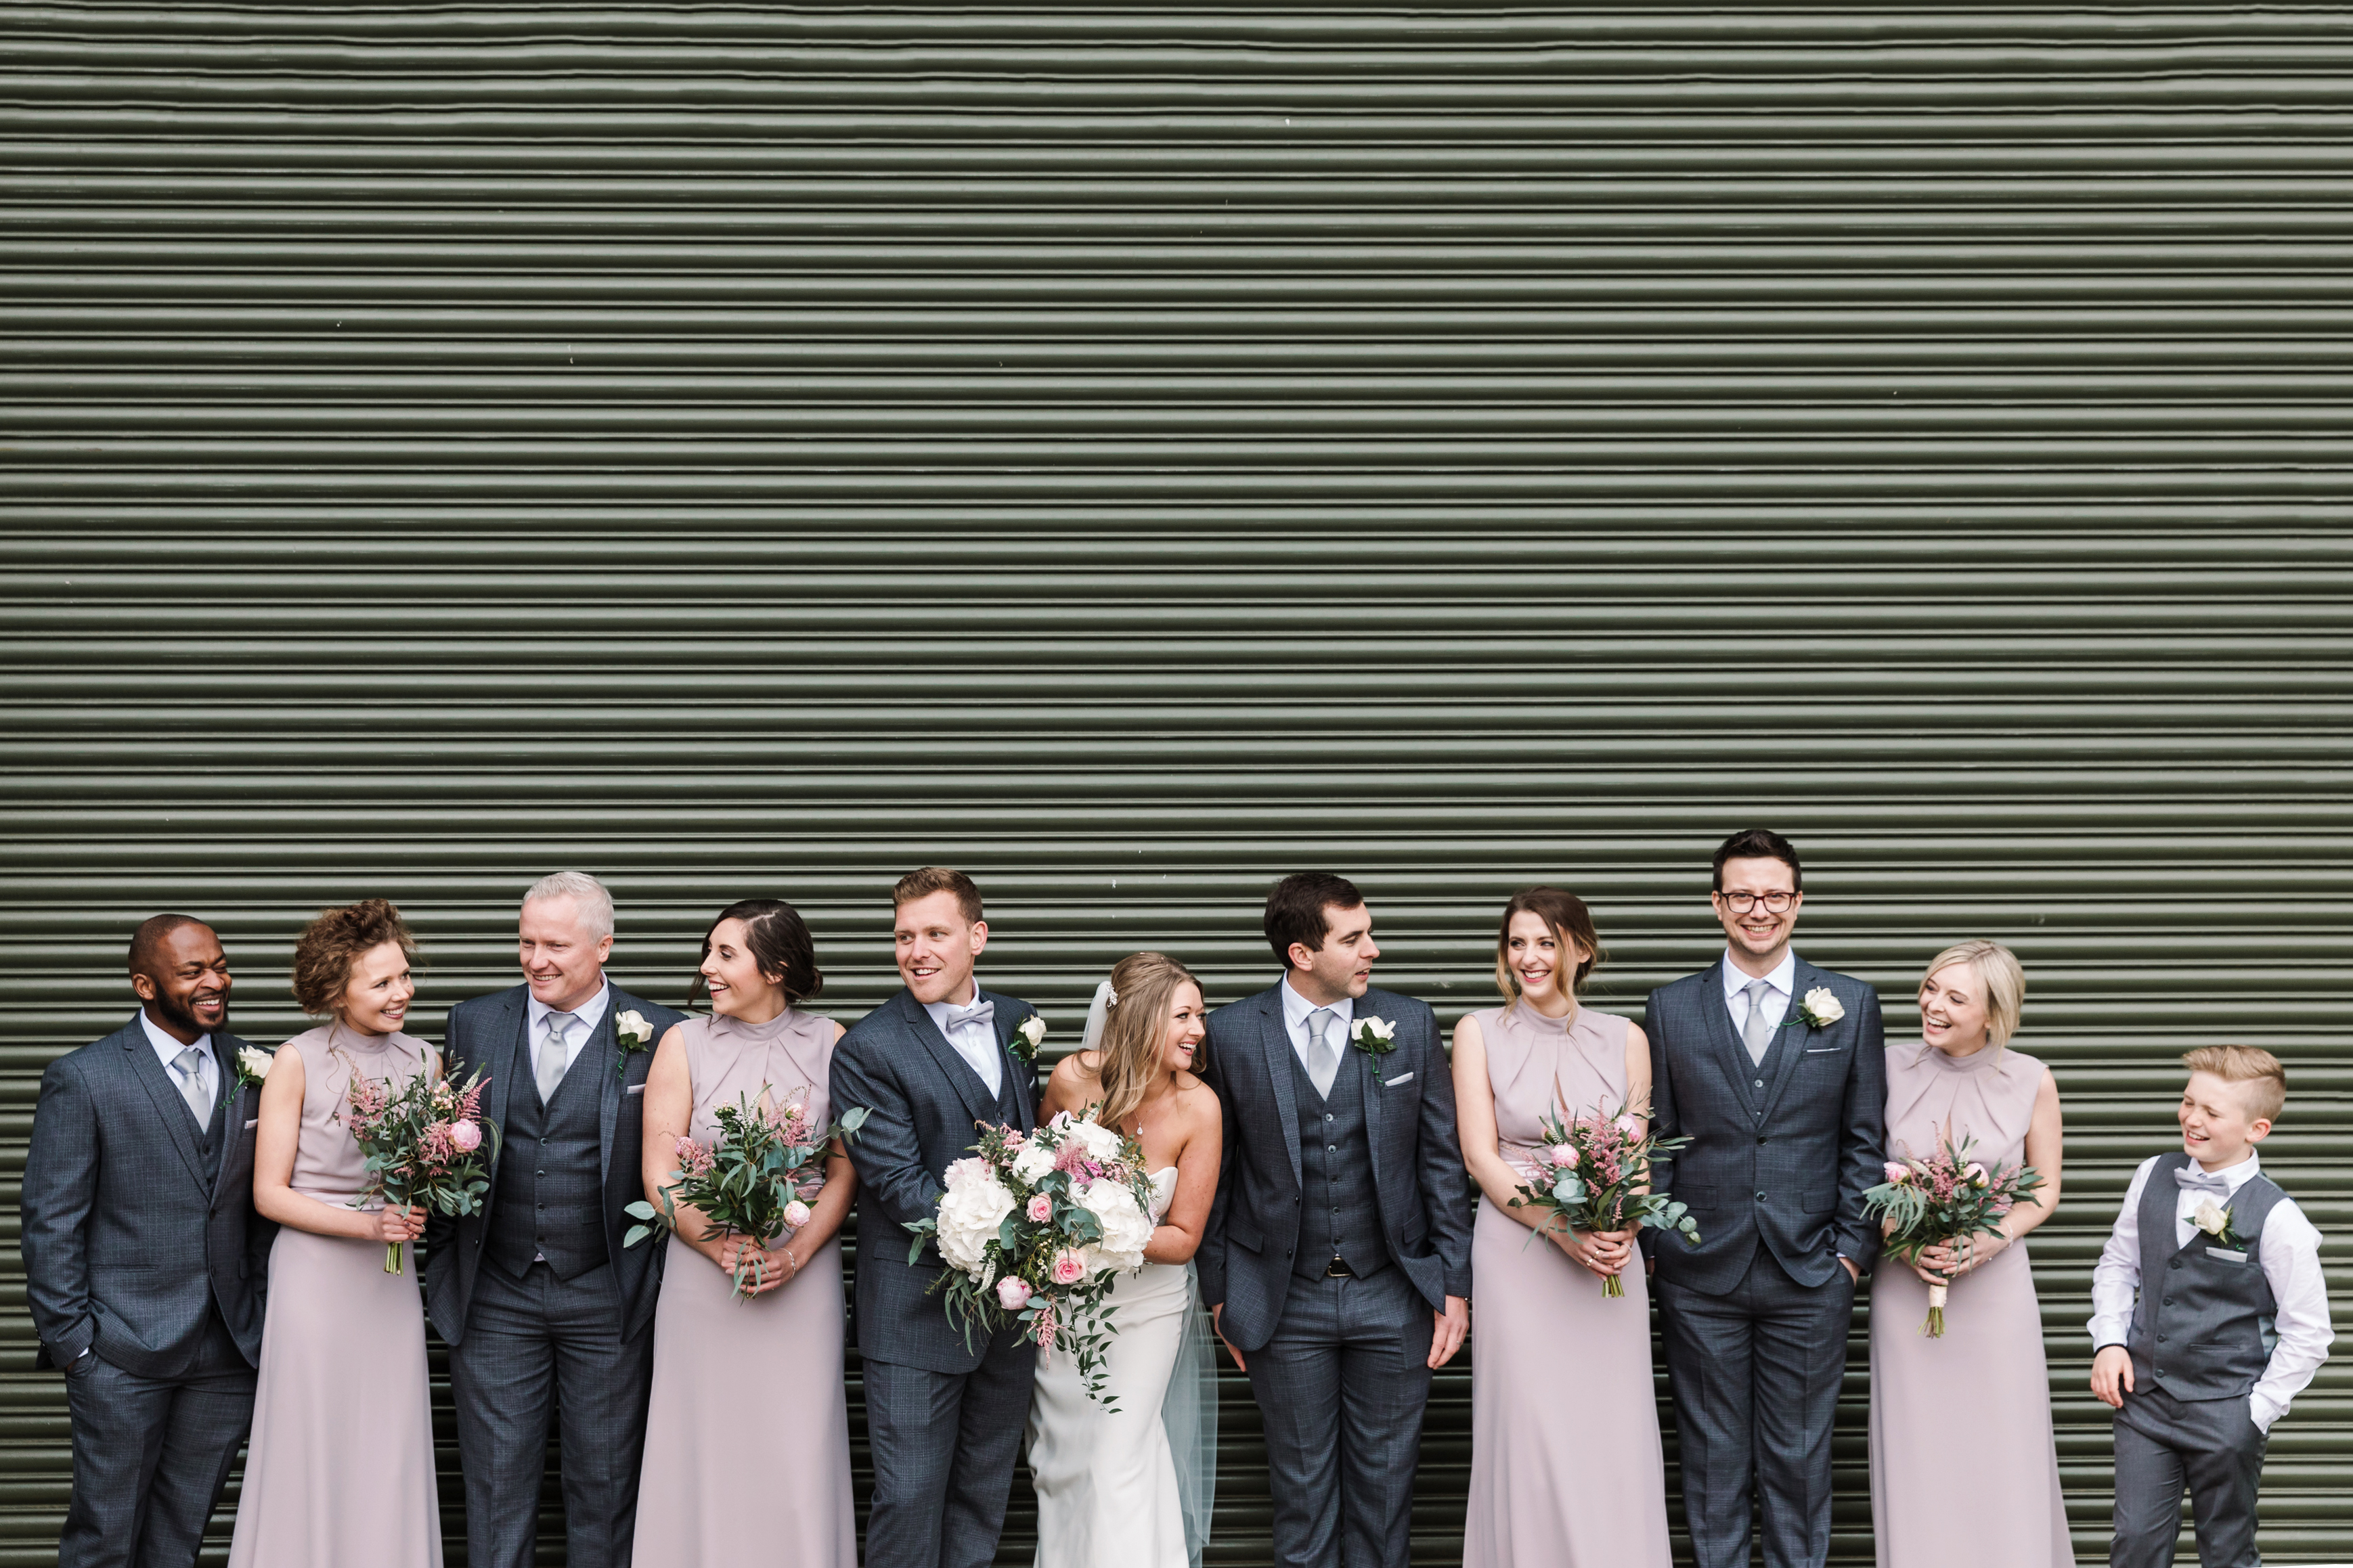 Wedding Photographs The Normans York | Weddings The Normans York